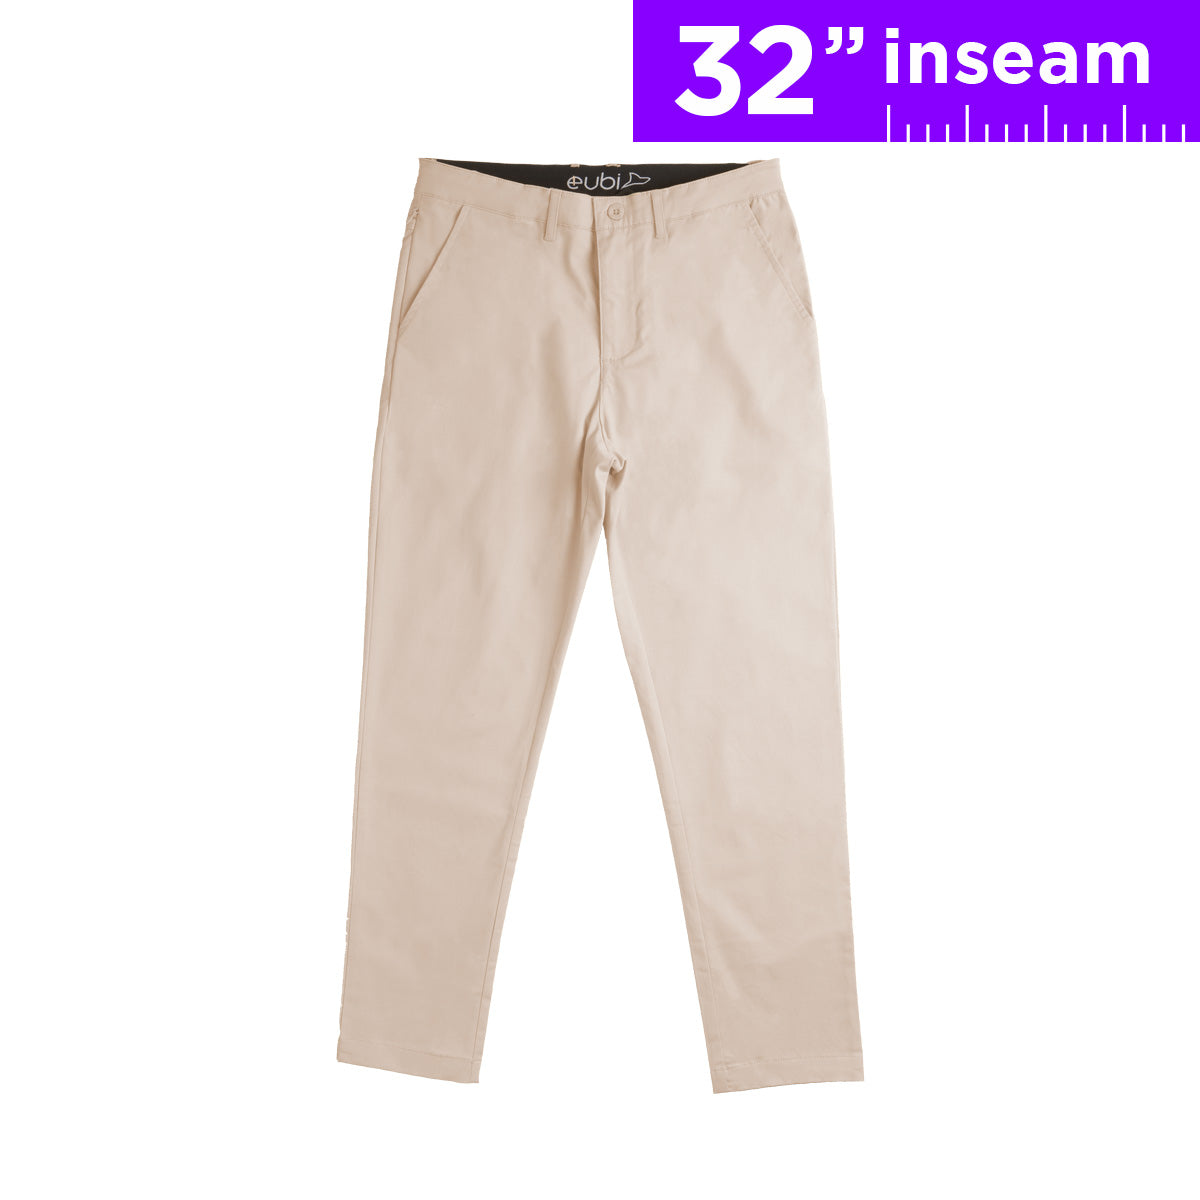 "32"" Sandy Brown Flex All Day Chino Pants"